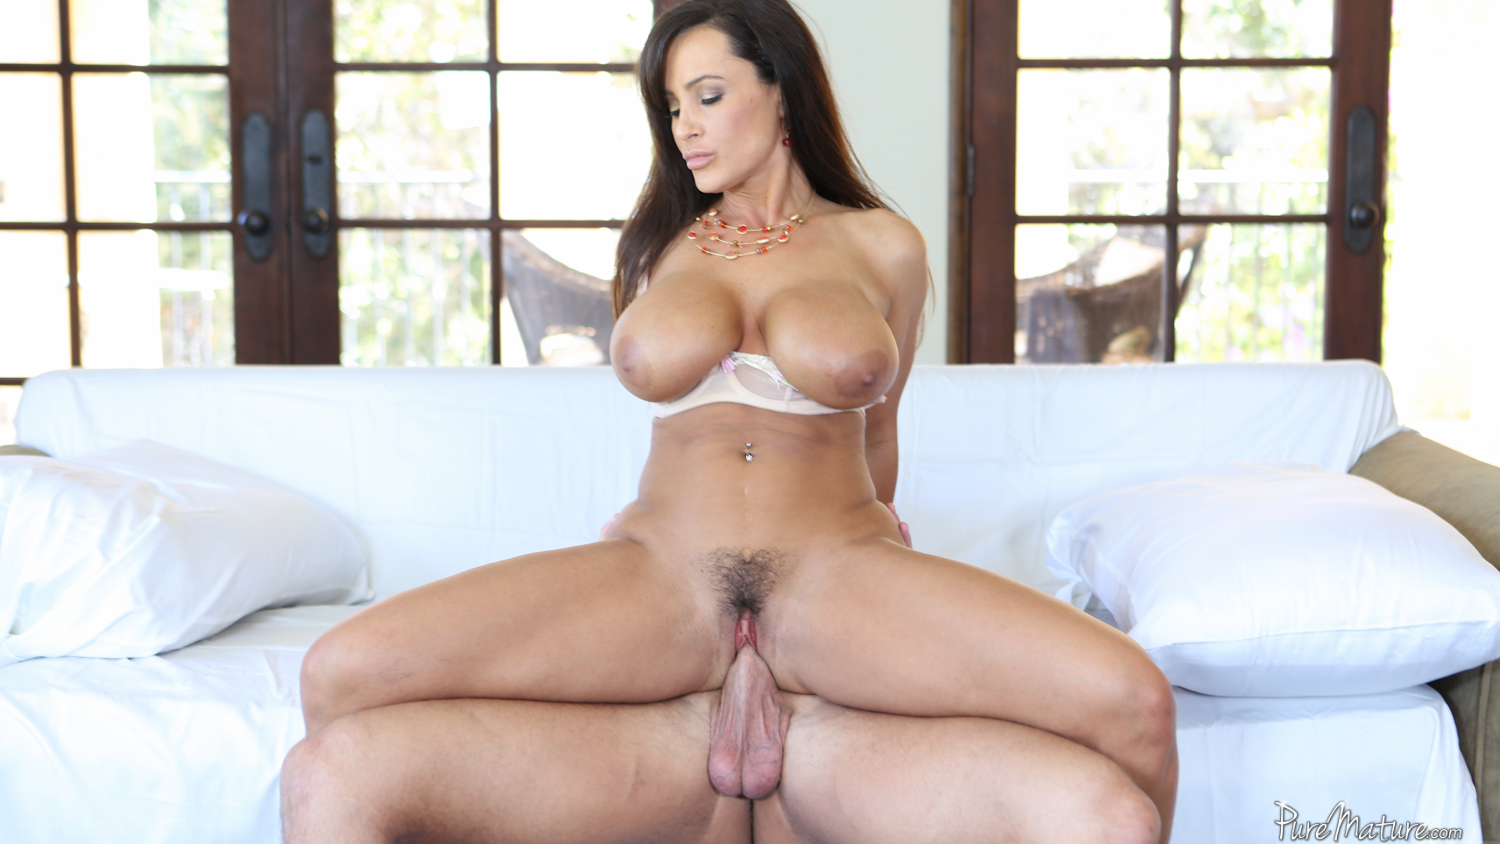 Confirm. happens. lisa ann pure mature sex you have